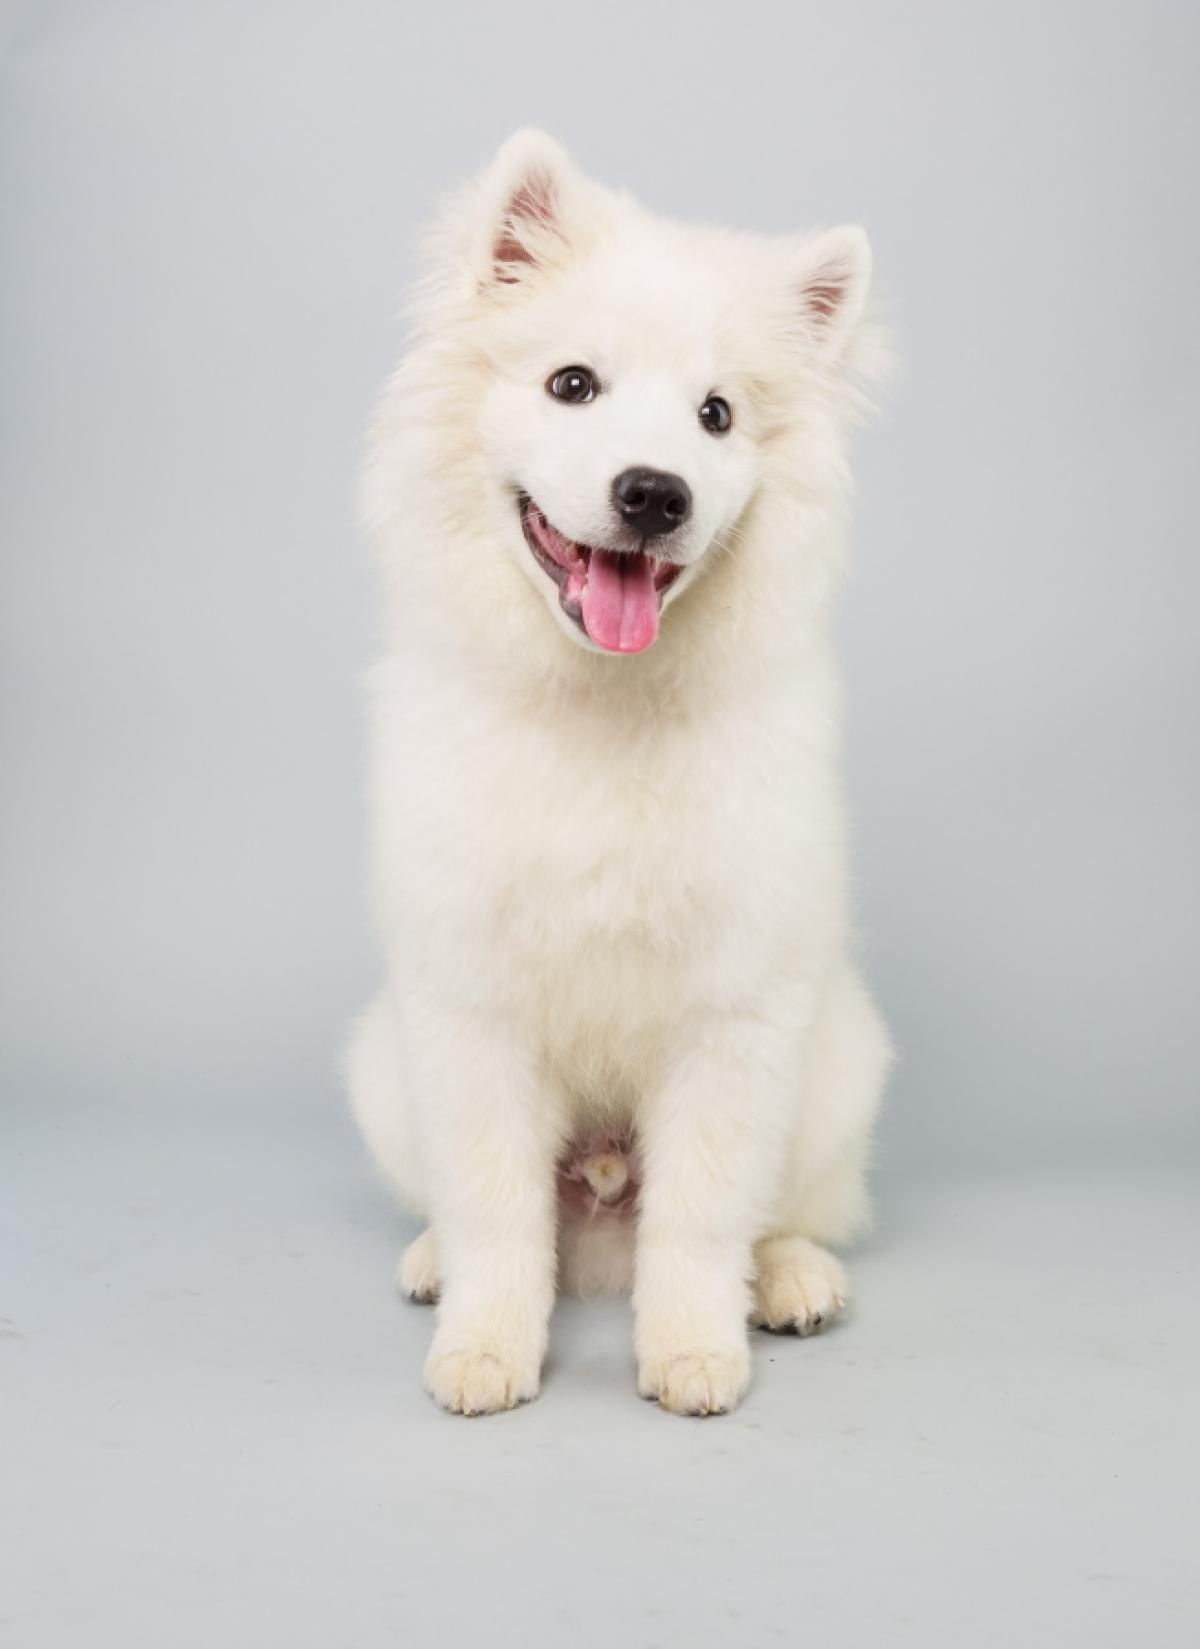 Brody, a 15-week-old American Eskimo dog, doesn't have to worry about cold weather during the Puppy Bowl. He has his own winter coat!